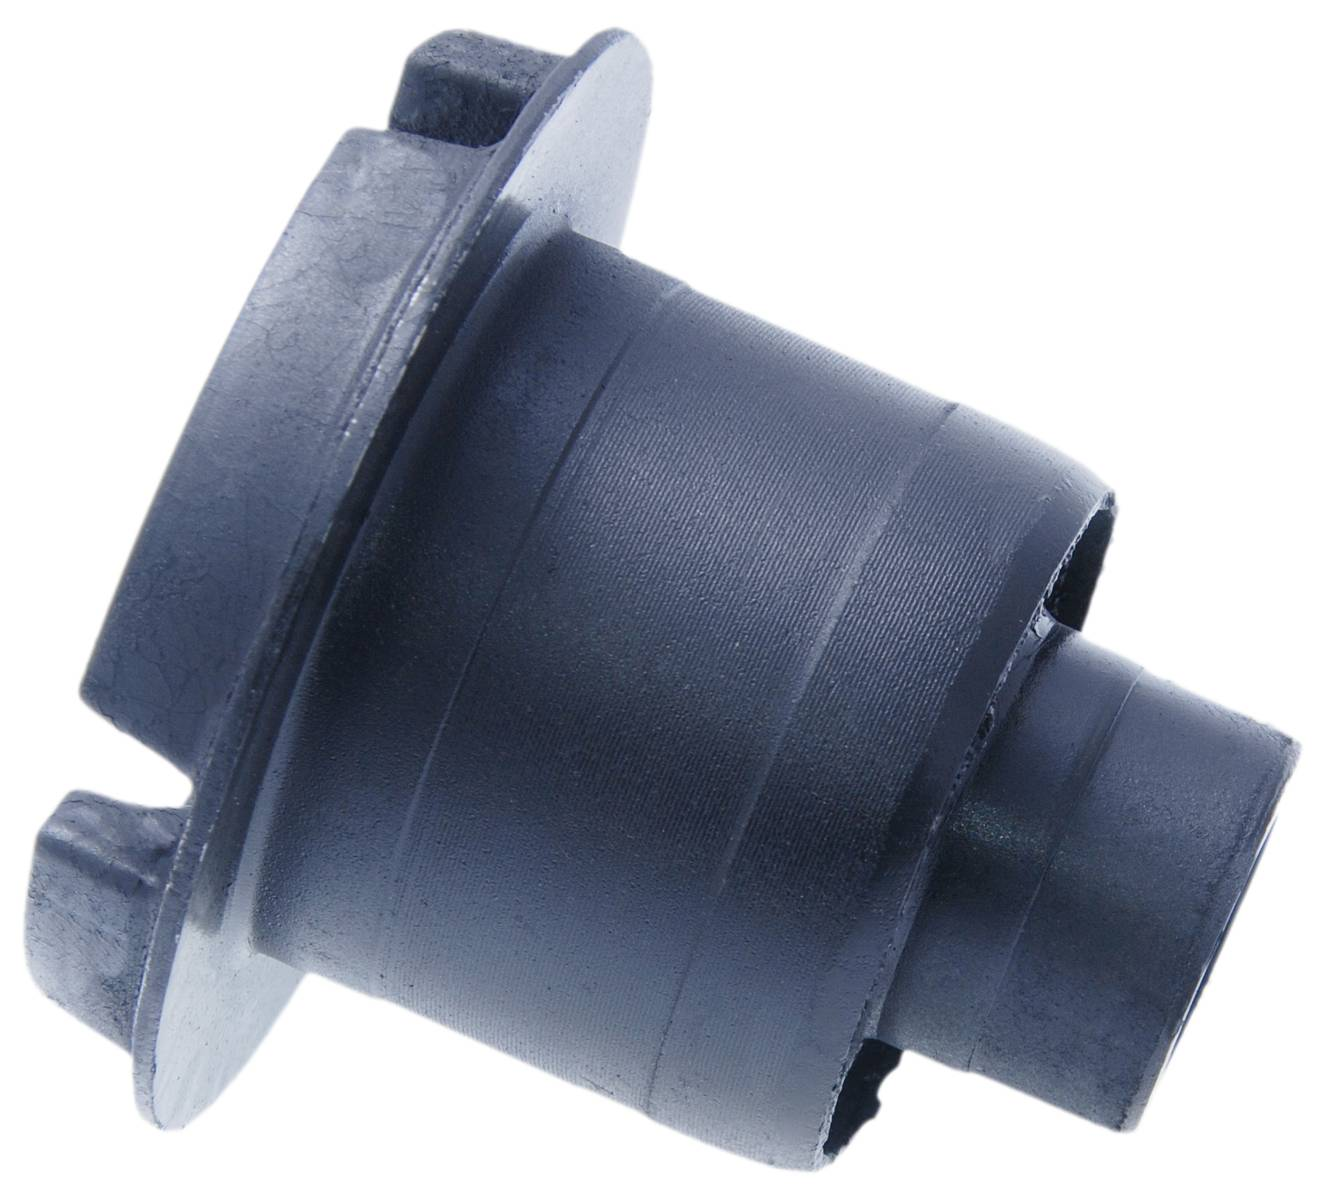 Febest 2003 Toyota Camry - Suspension Subframe Bushing FEBEST # TAB-507 OEM # 52215-28010 at Sears.com